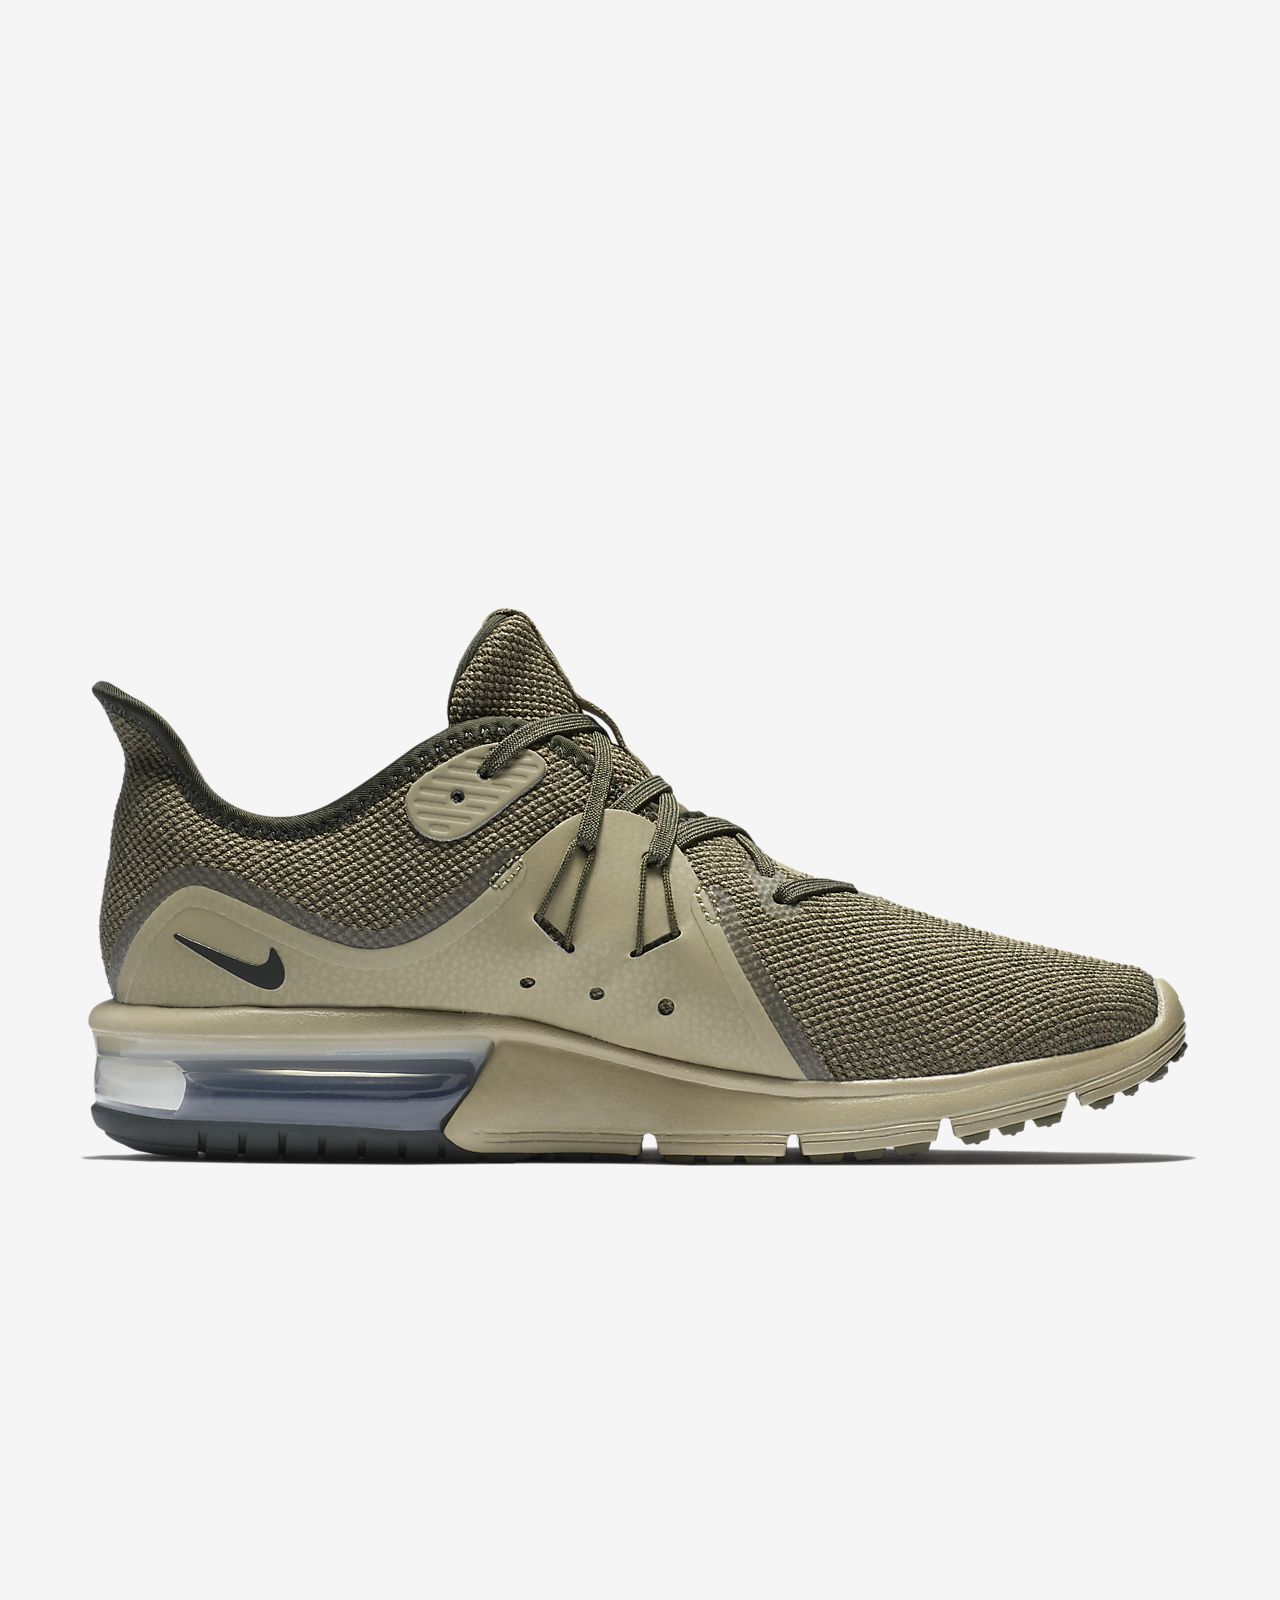 5ce33054796 ... clearance nike max run lite 3 flywire c0a86 00e68